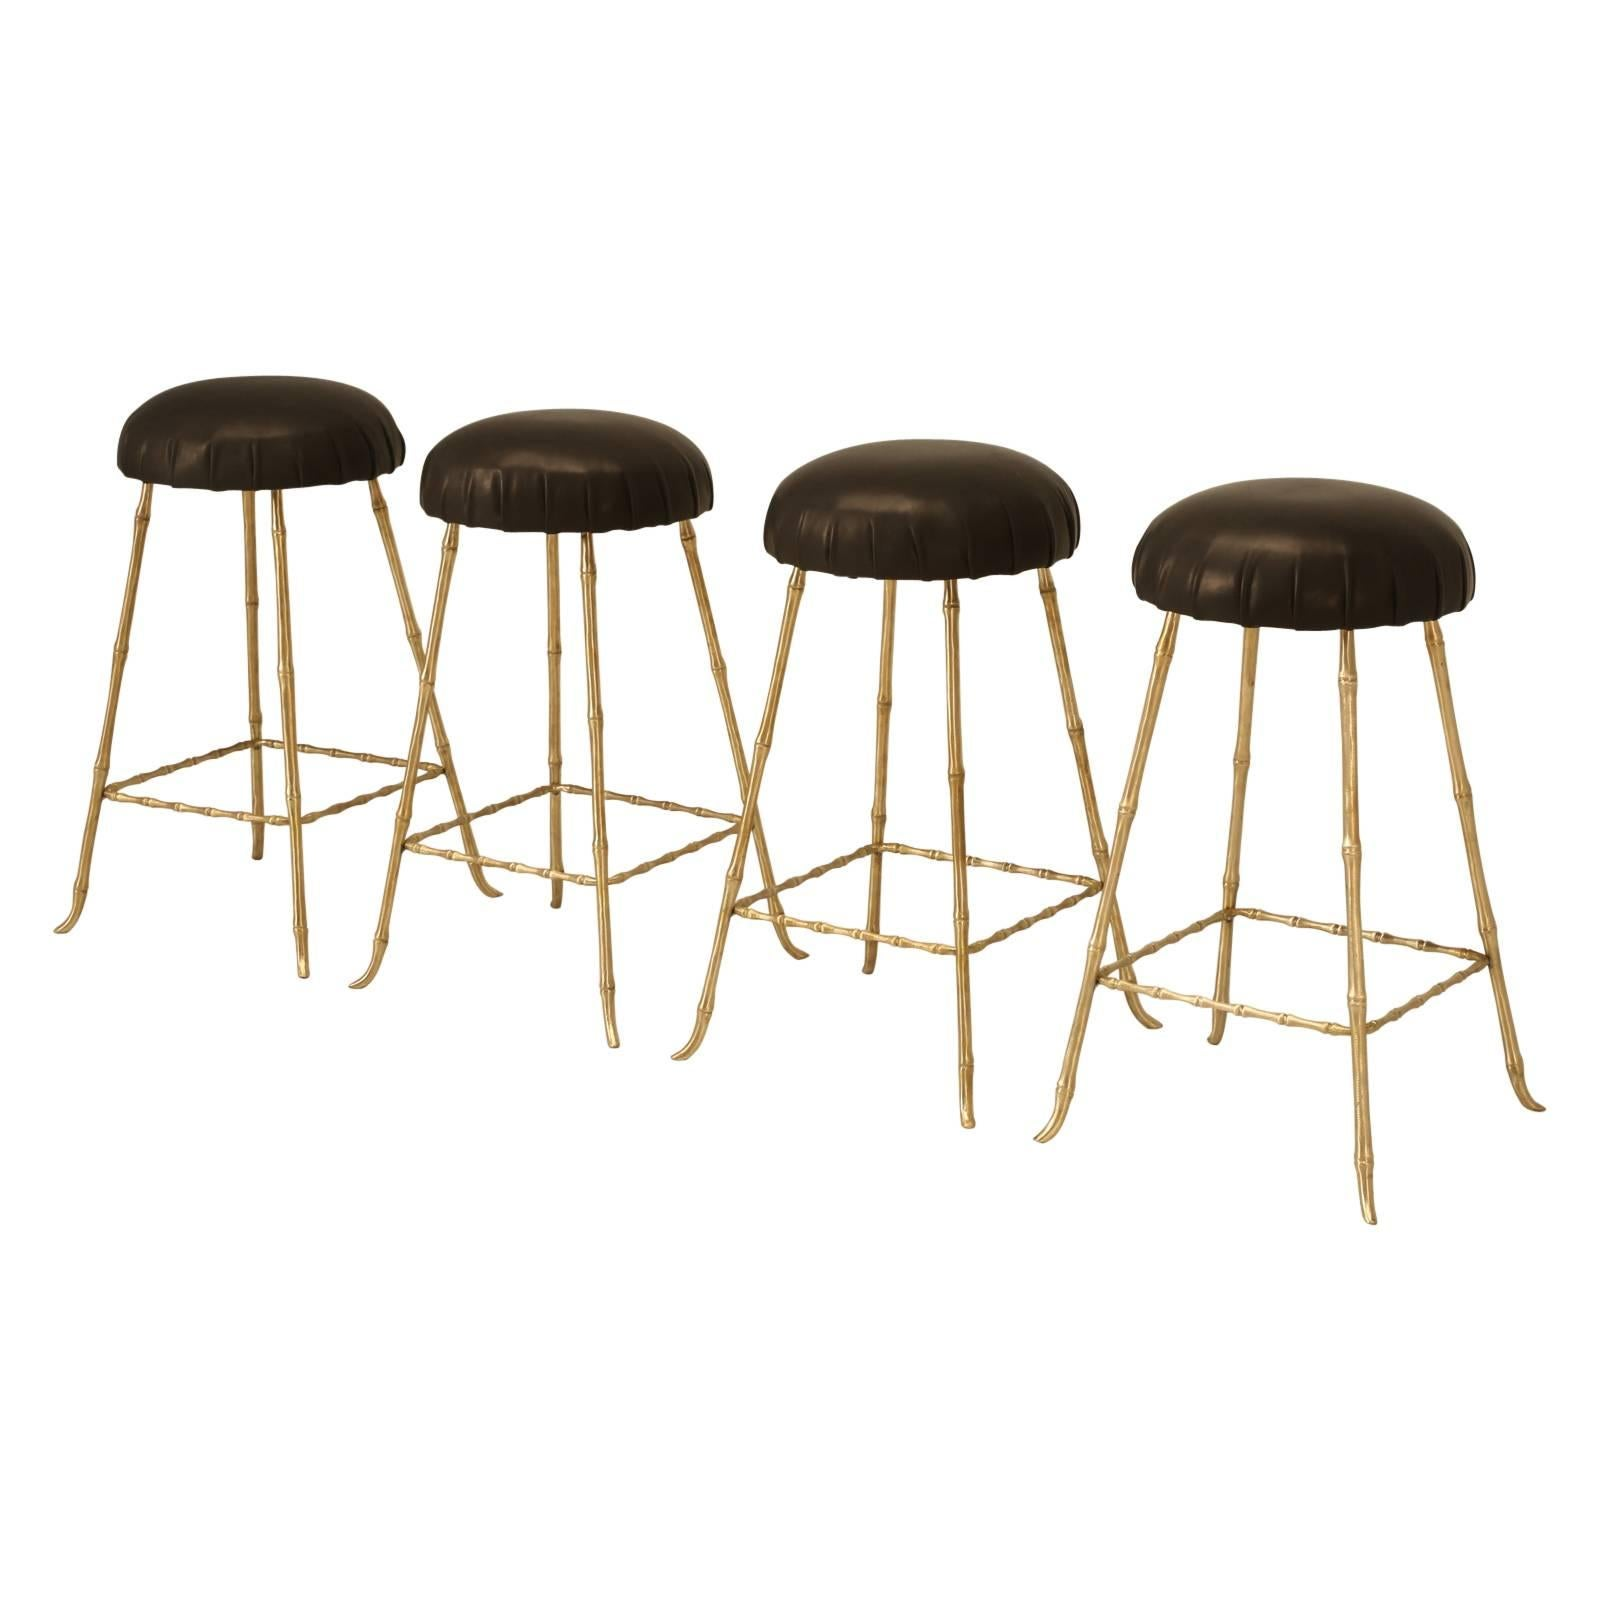 Polished Solid Brass Counter Stools in a Jansen Inspired Faux Bamboo Design